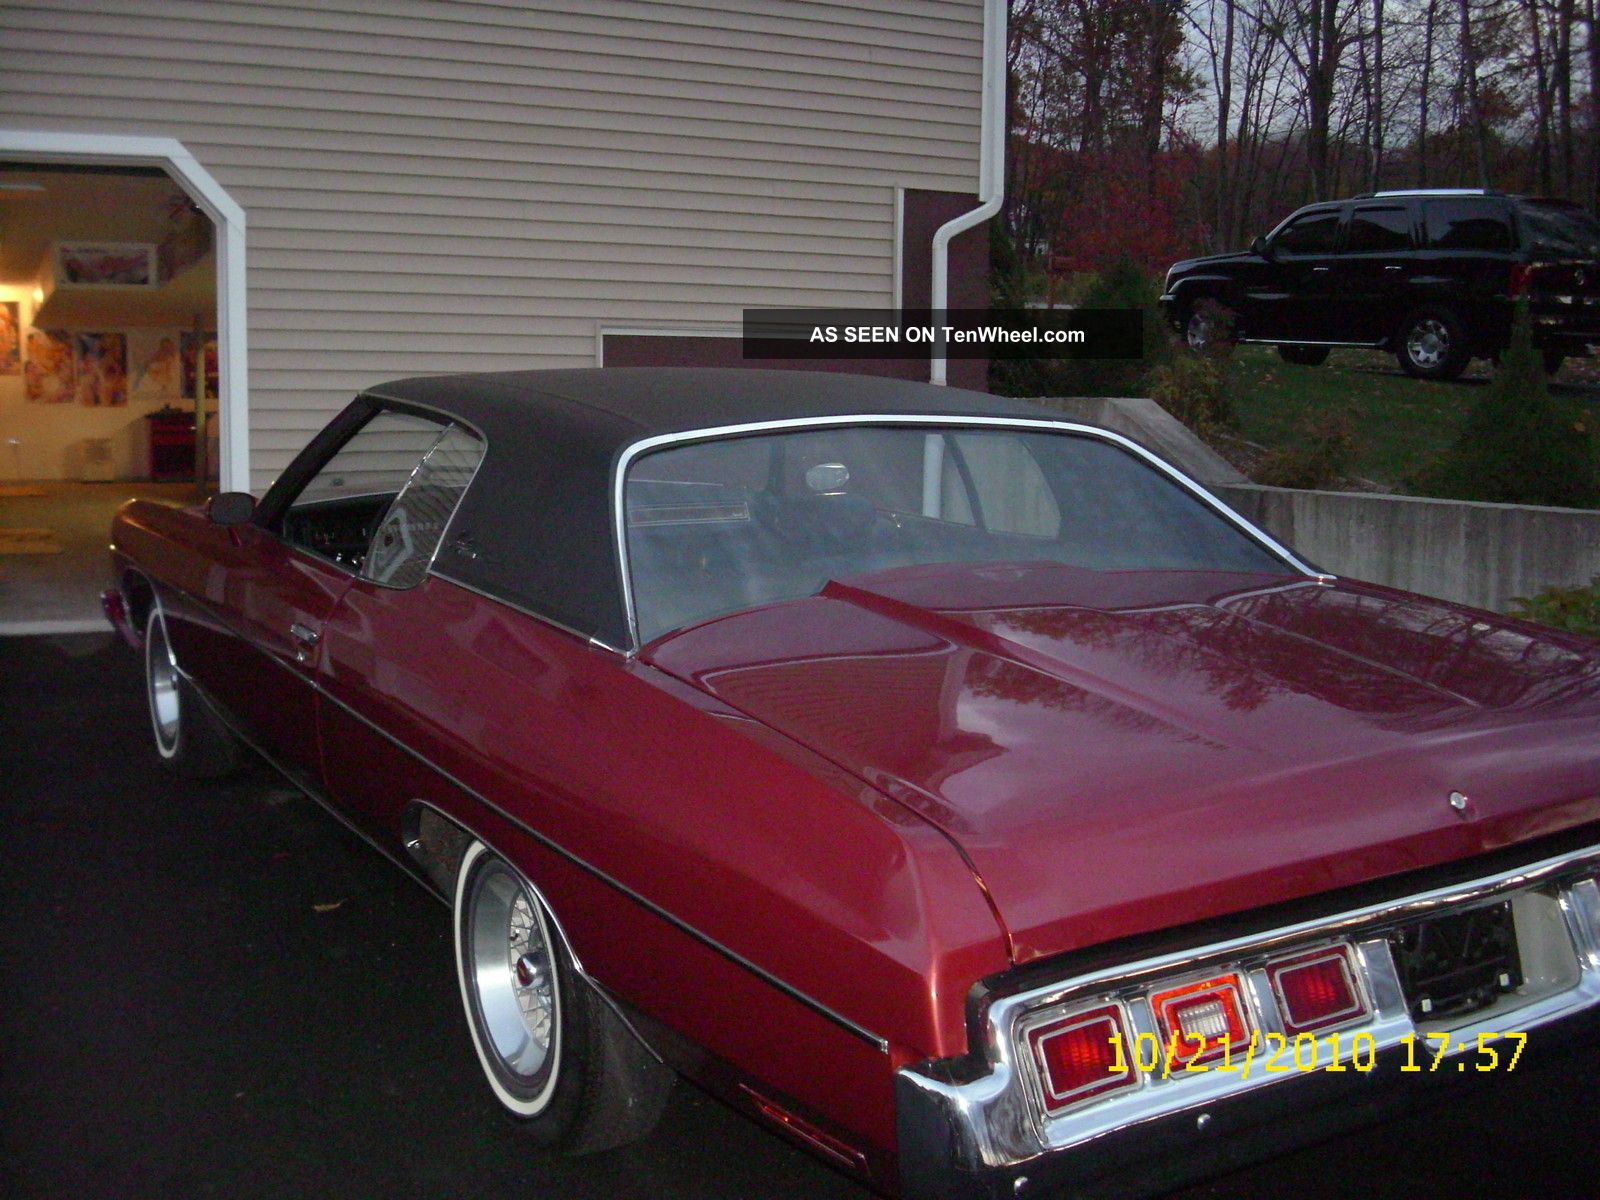 1973 Chevy Impala Custom Burgundy With Black Vinyl Roof